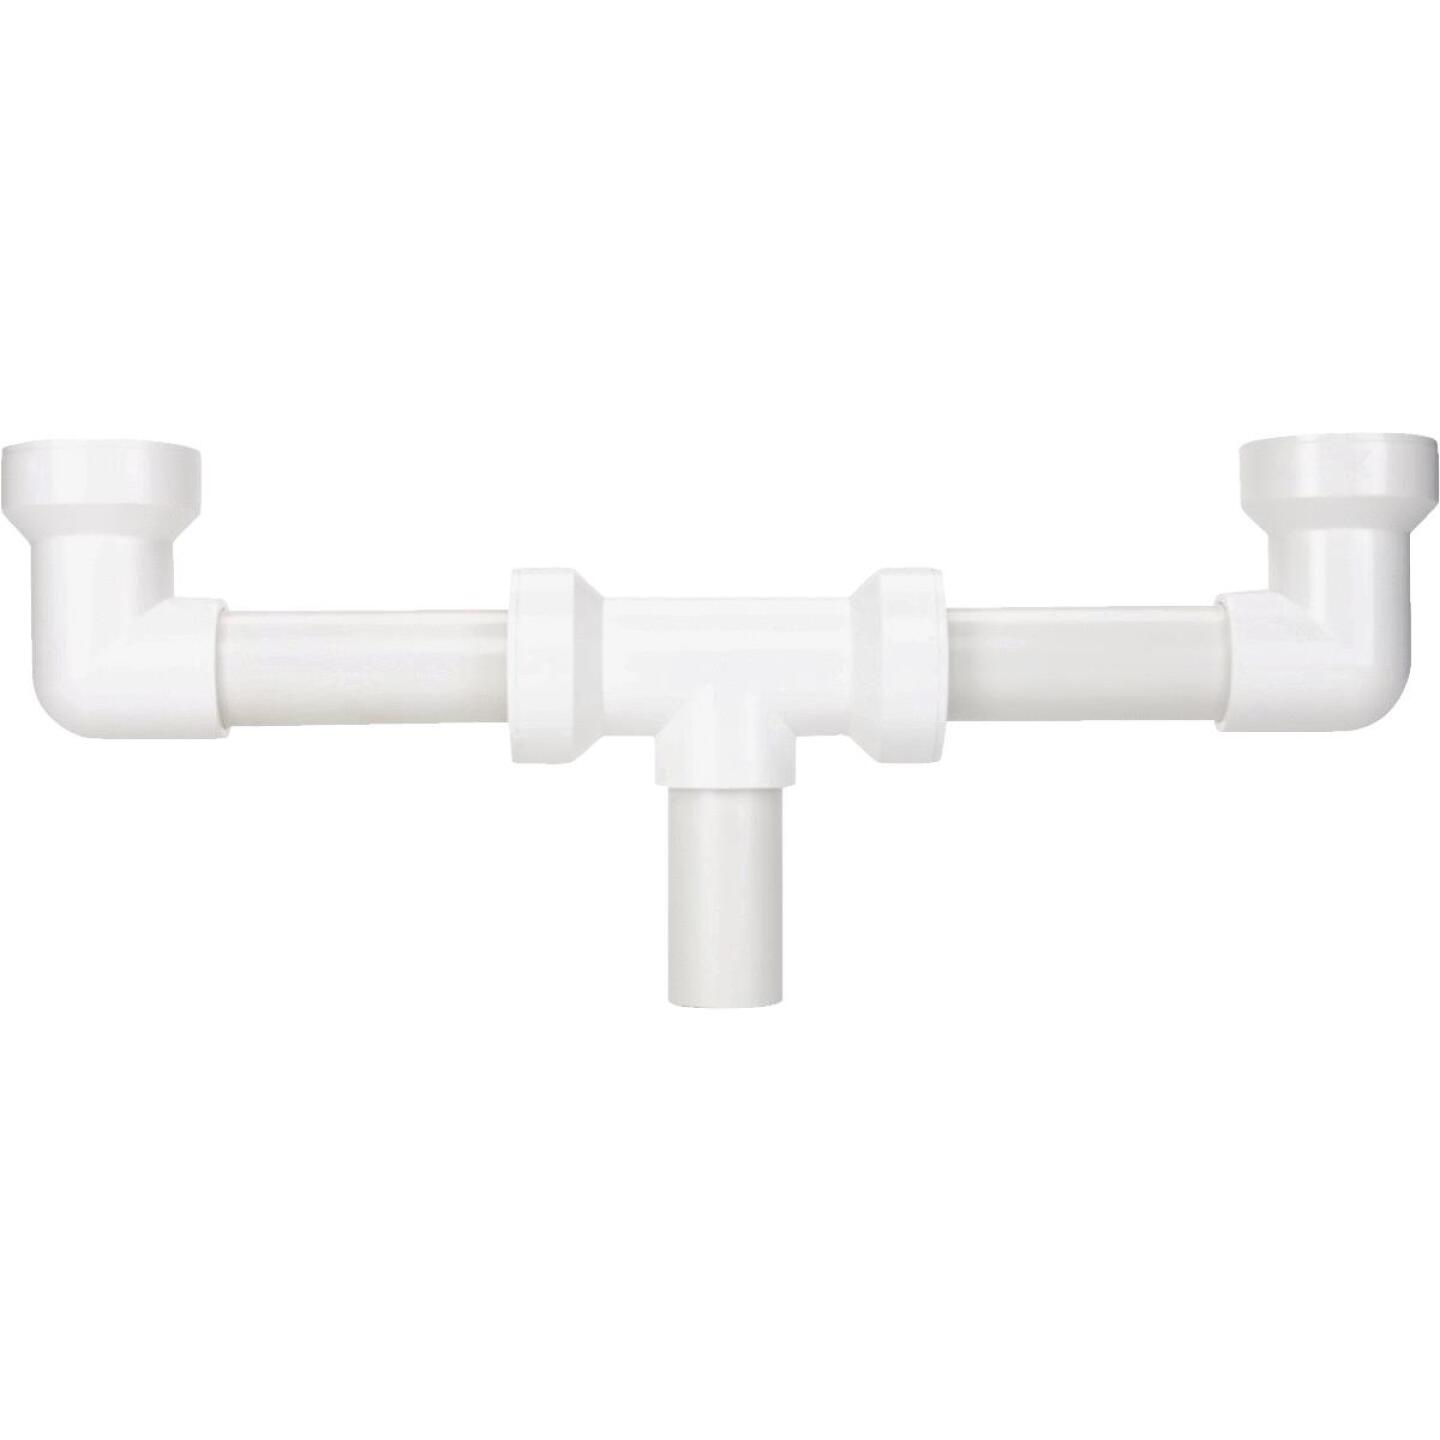 Keeney Insta-Plumb 1-1/2 In. x 16 In. White Plastic Center Outlet Waste Image 1